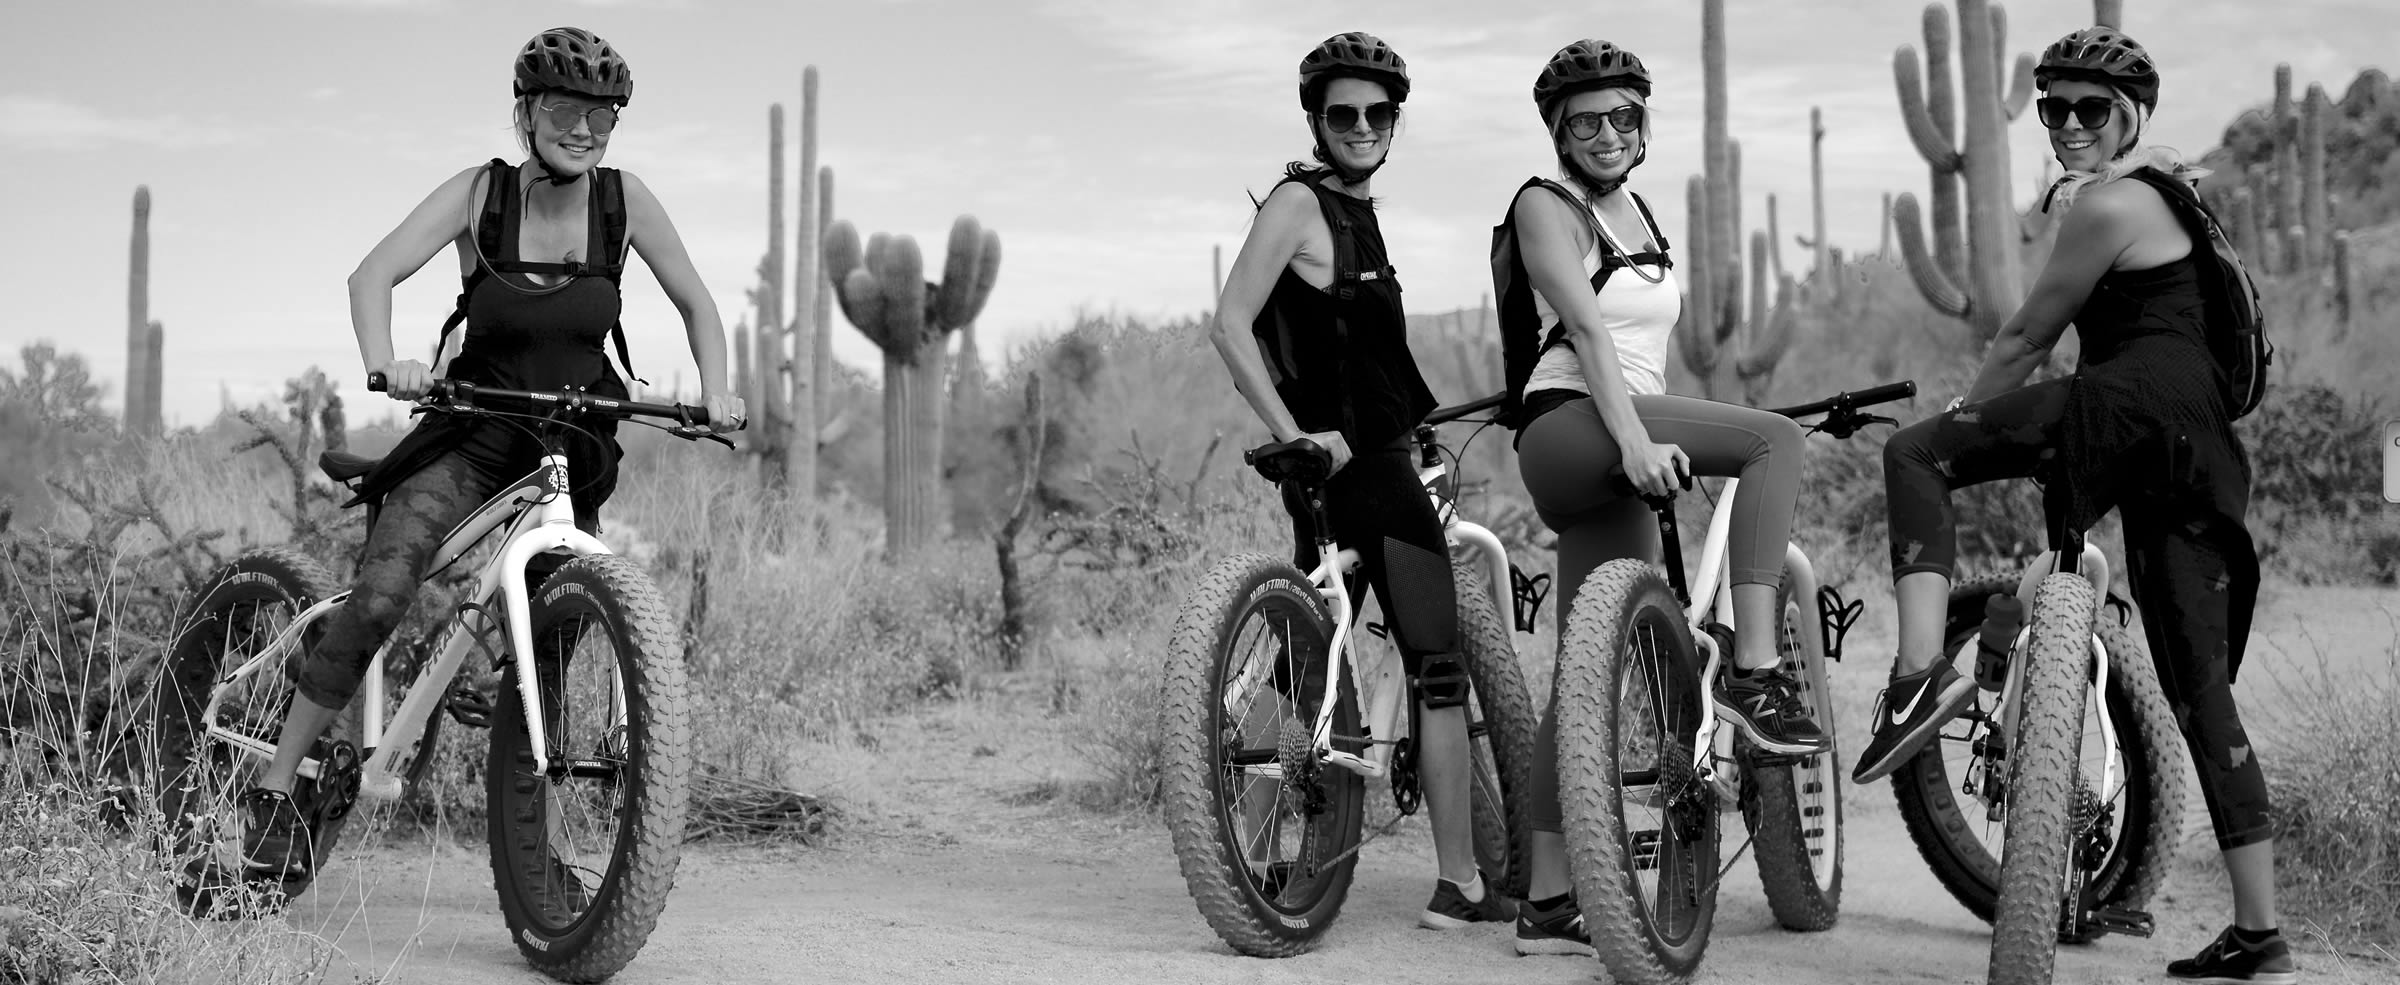 Sonoran Adventures for Bachelorette party